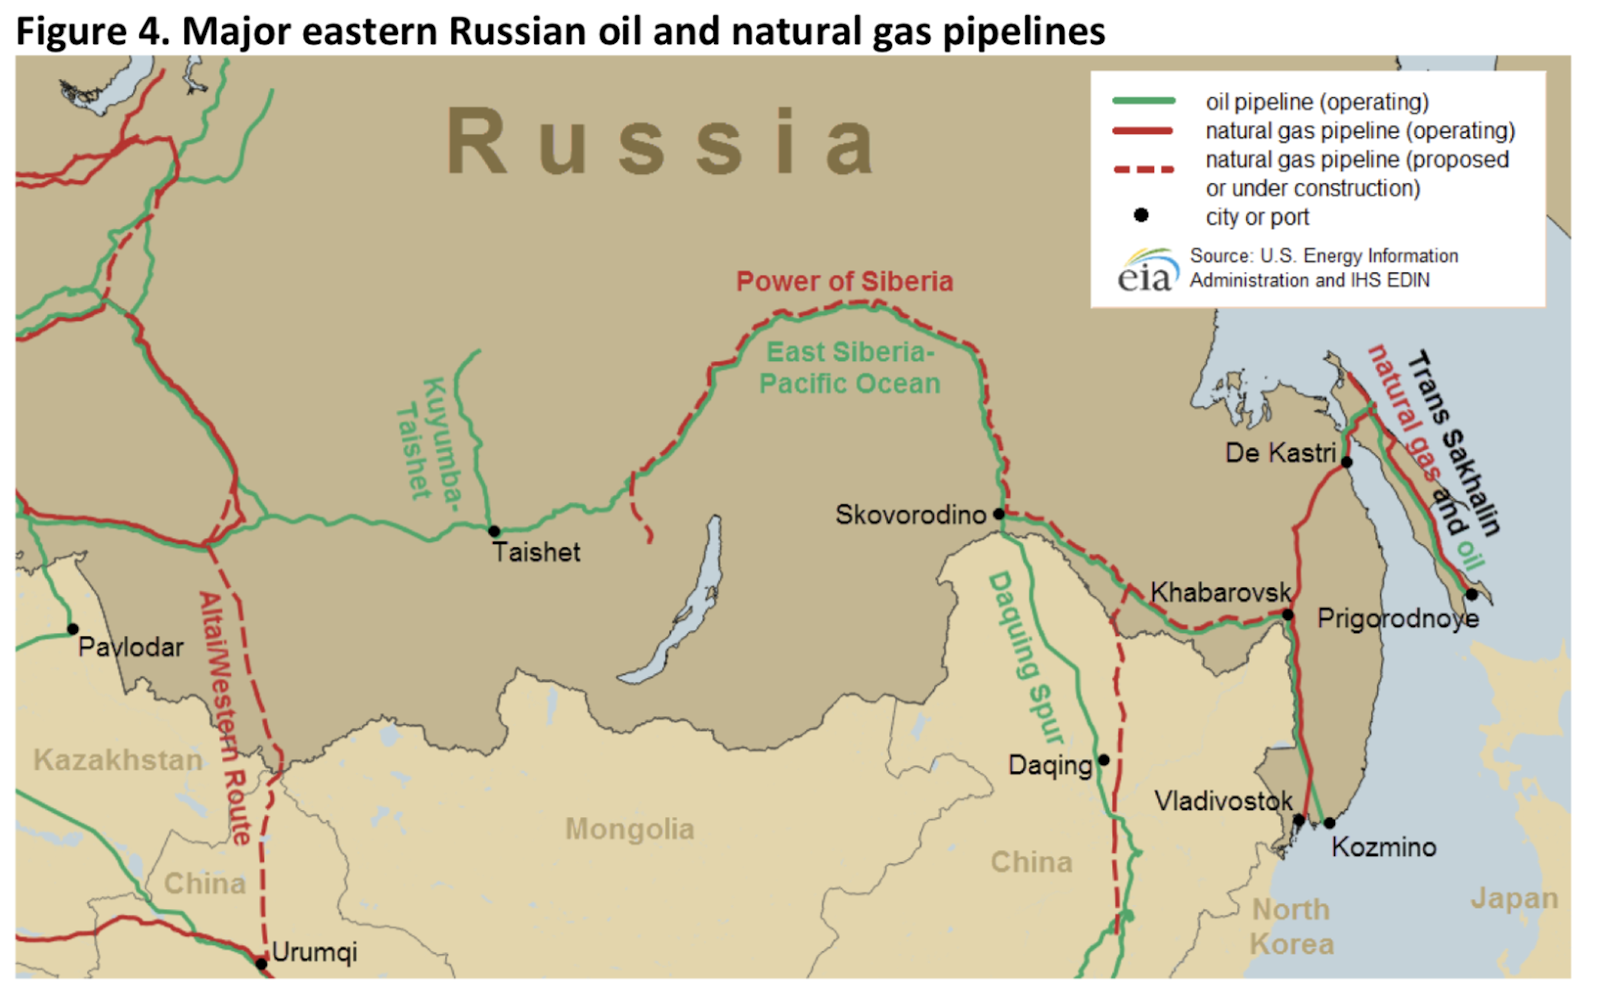 in eastern russia and as a result there is a significant investment in oil infrastructure transporting oil to the pacific ocean as shown on this map